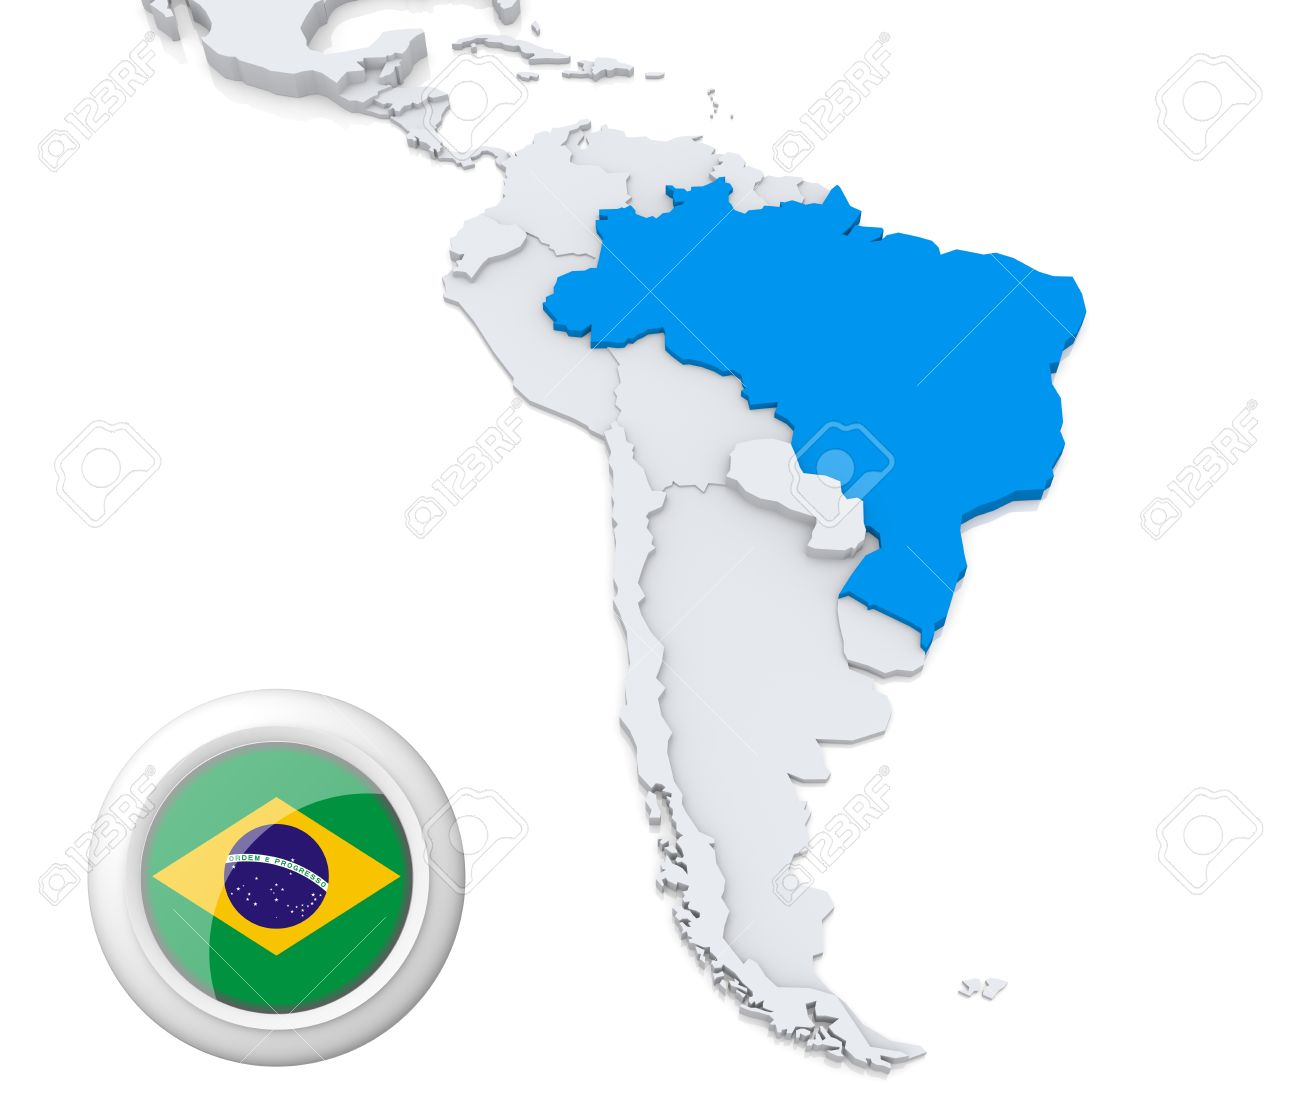 Highlighted Brazil On Map Of South America With National Flag - South america map and flags